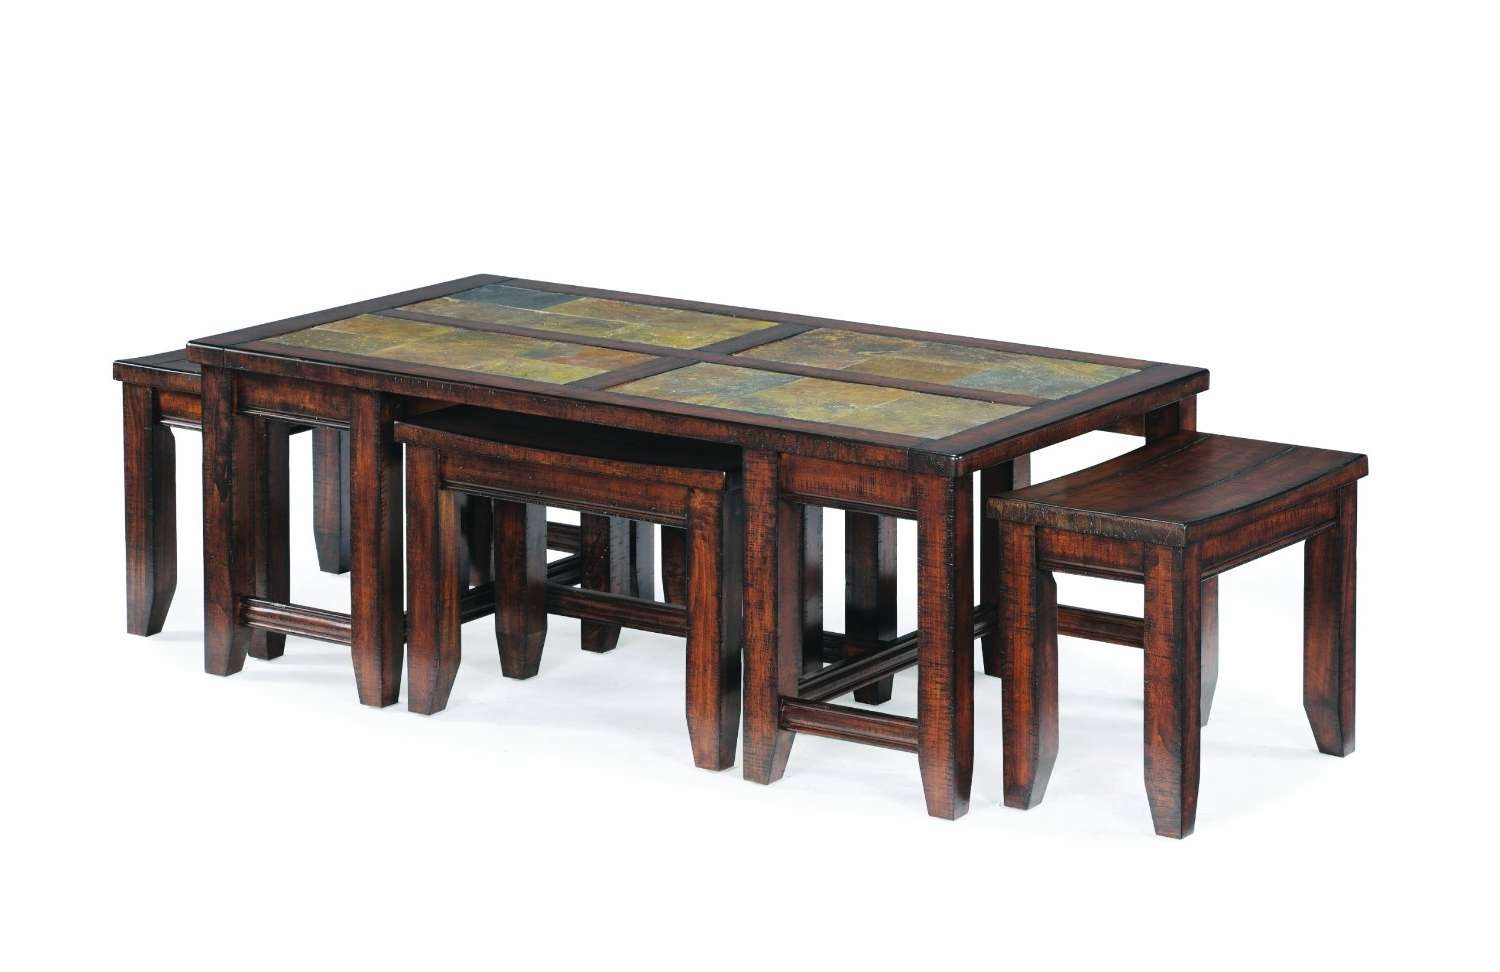 Well Known Coffee Table With Chairs With Furniture (View 15 of 20)